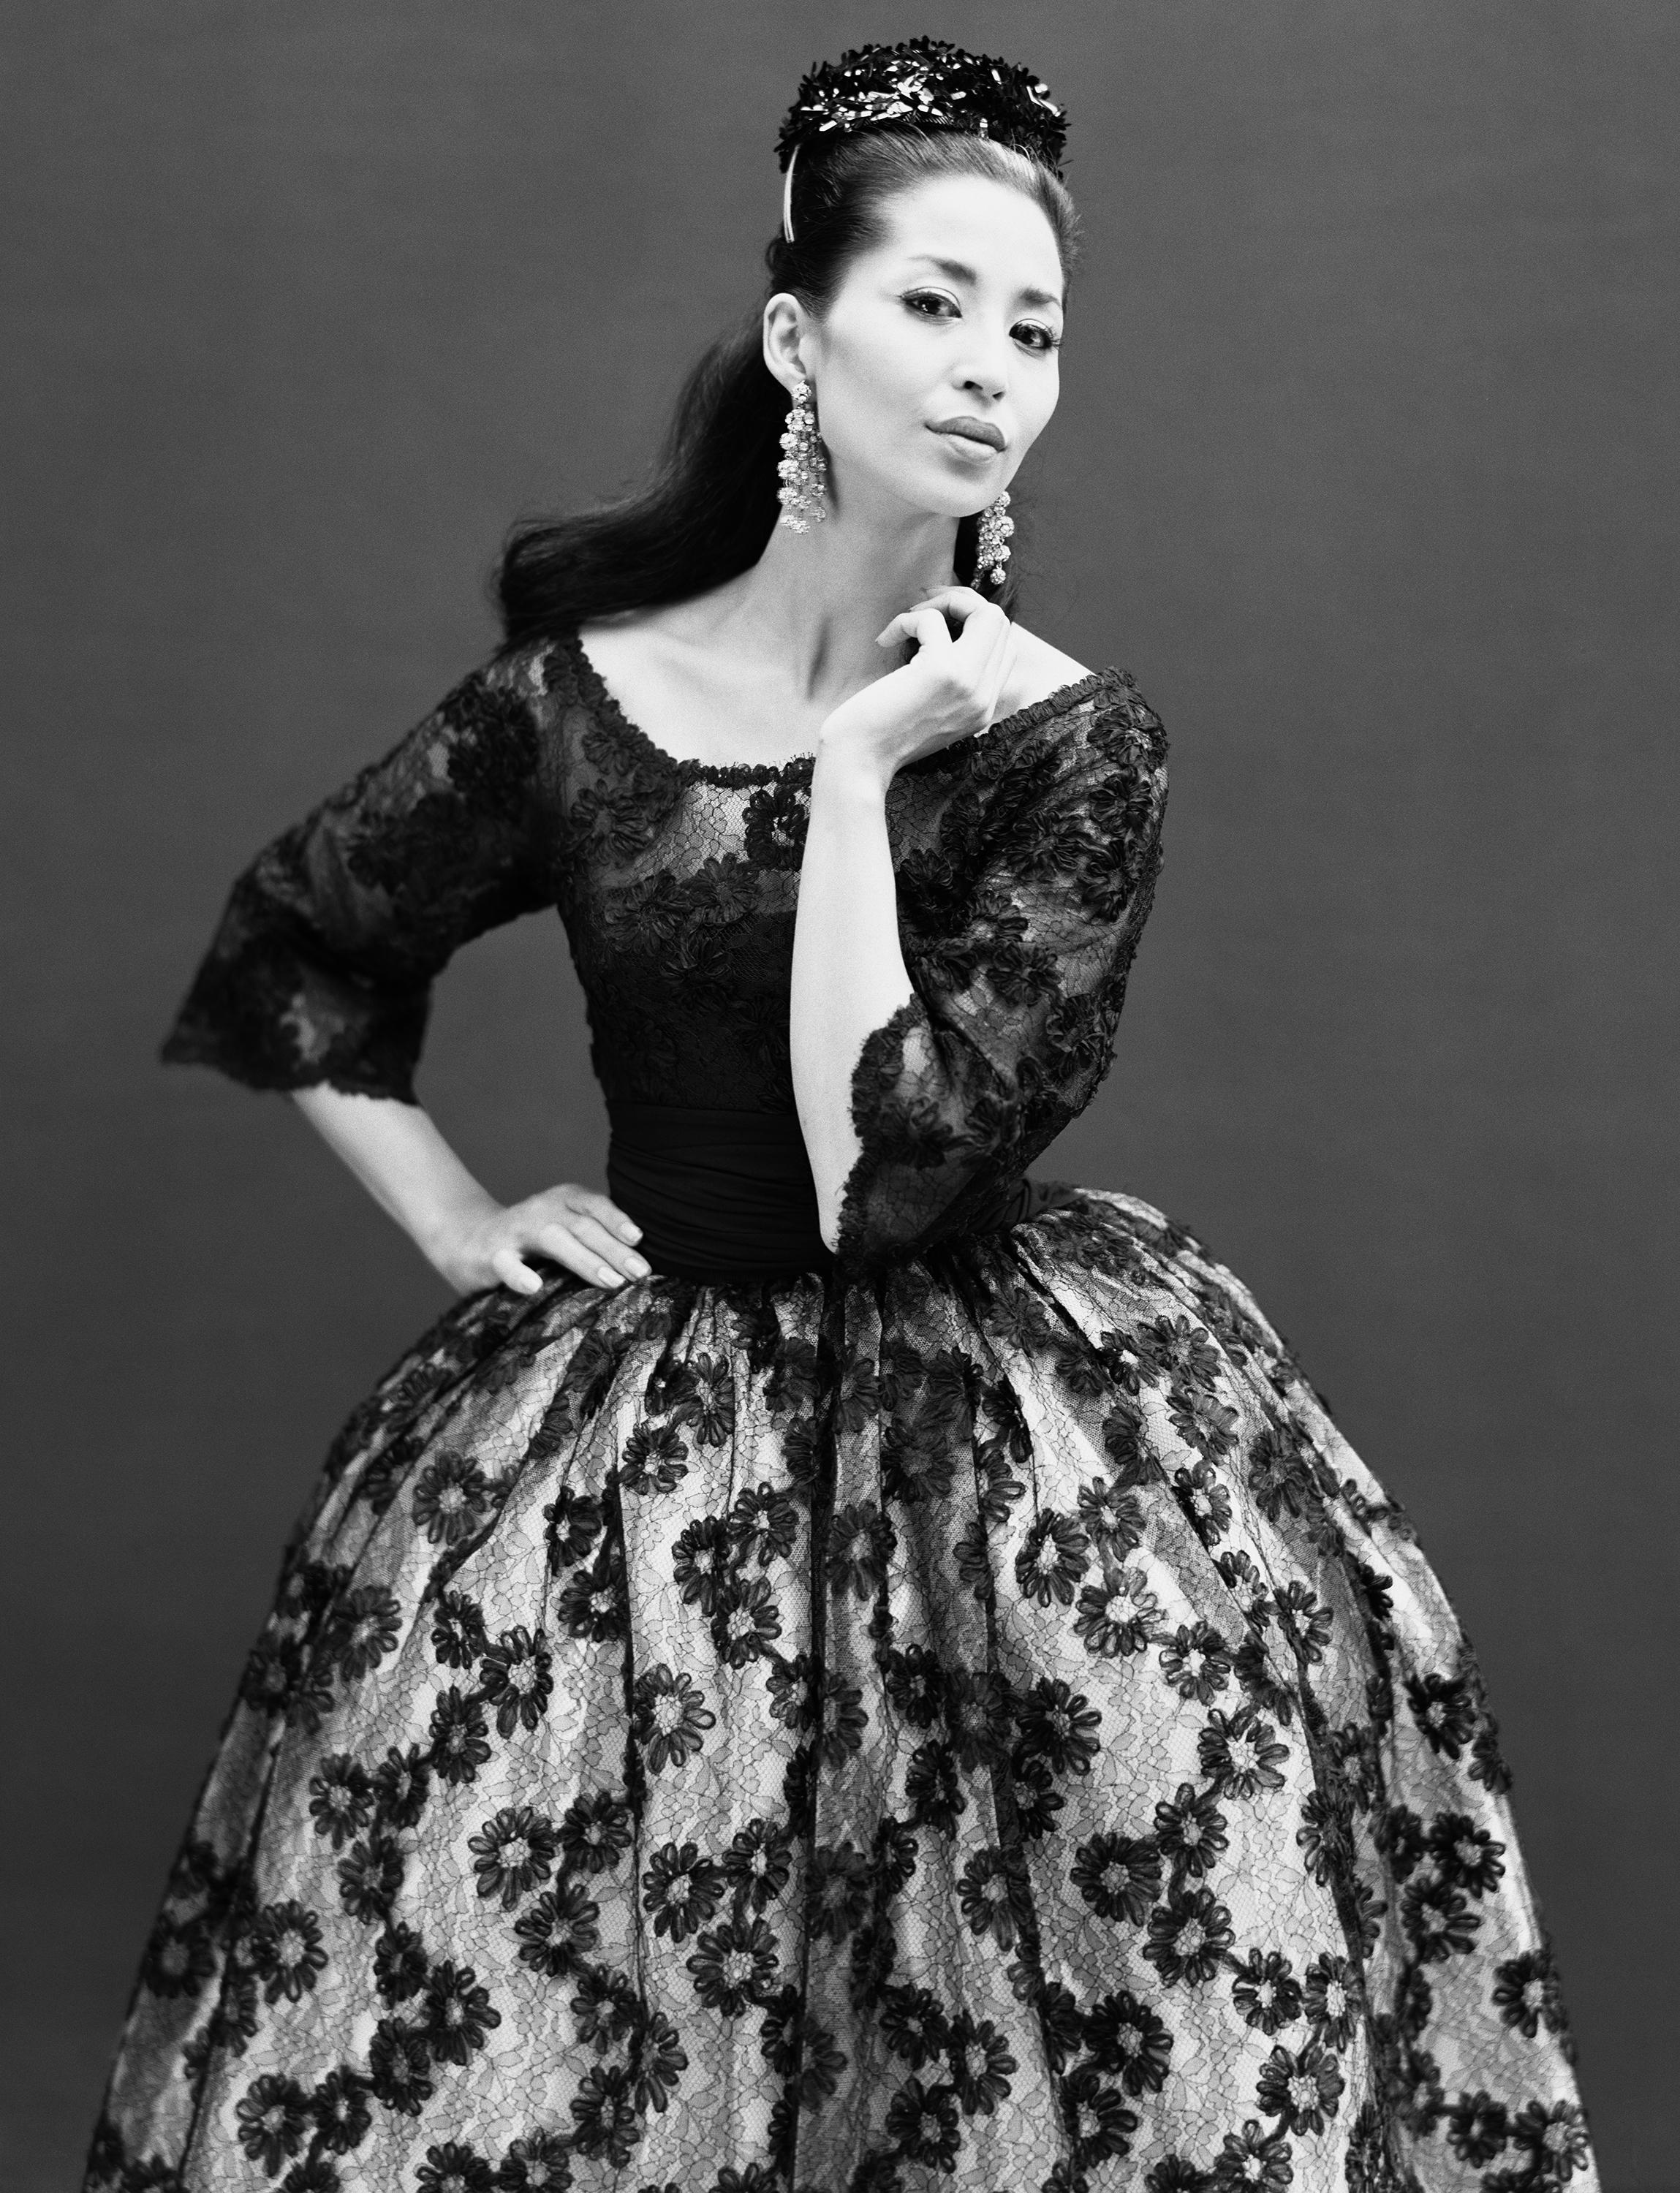 Jacques griffe pleasurephoto model china machado in a dress by jacques griffe paris in august 1959 publicscrutiny Choice Image